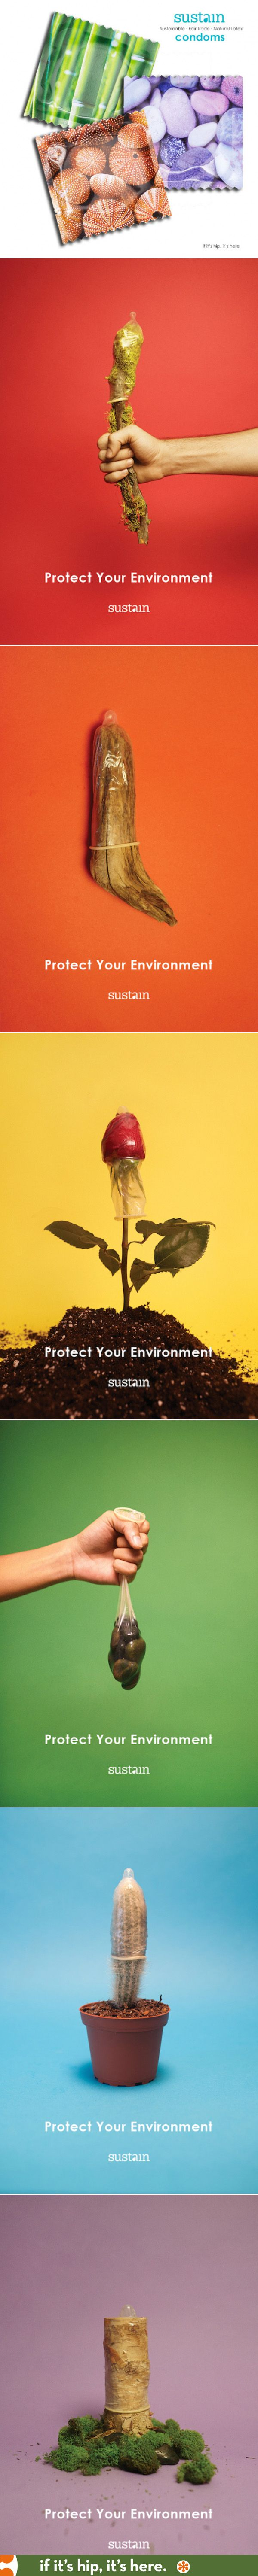 Sustain Condoms. A look at the new brand's ad campaign at http://www.ifitshipitshere.com/sustain-condoms-packaging-advertising/